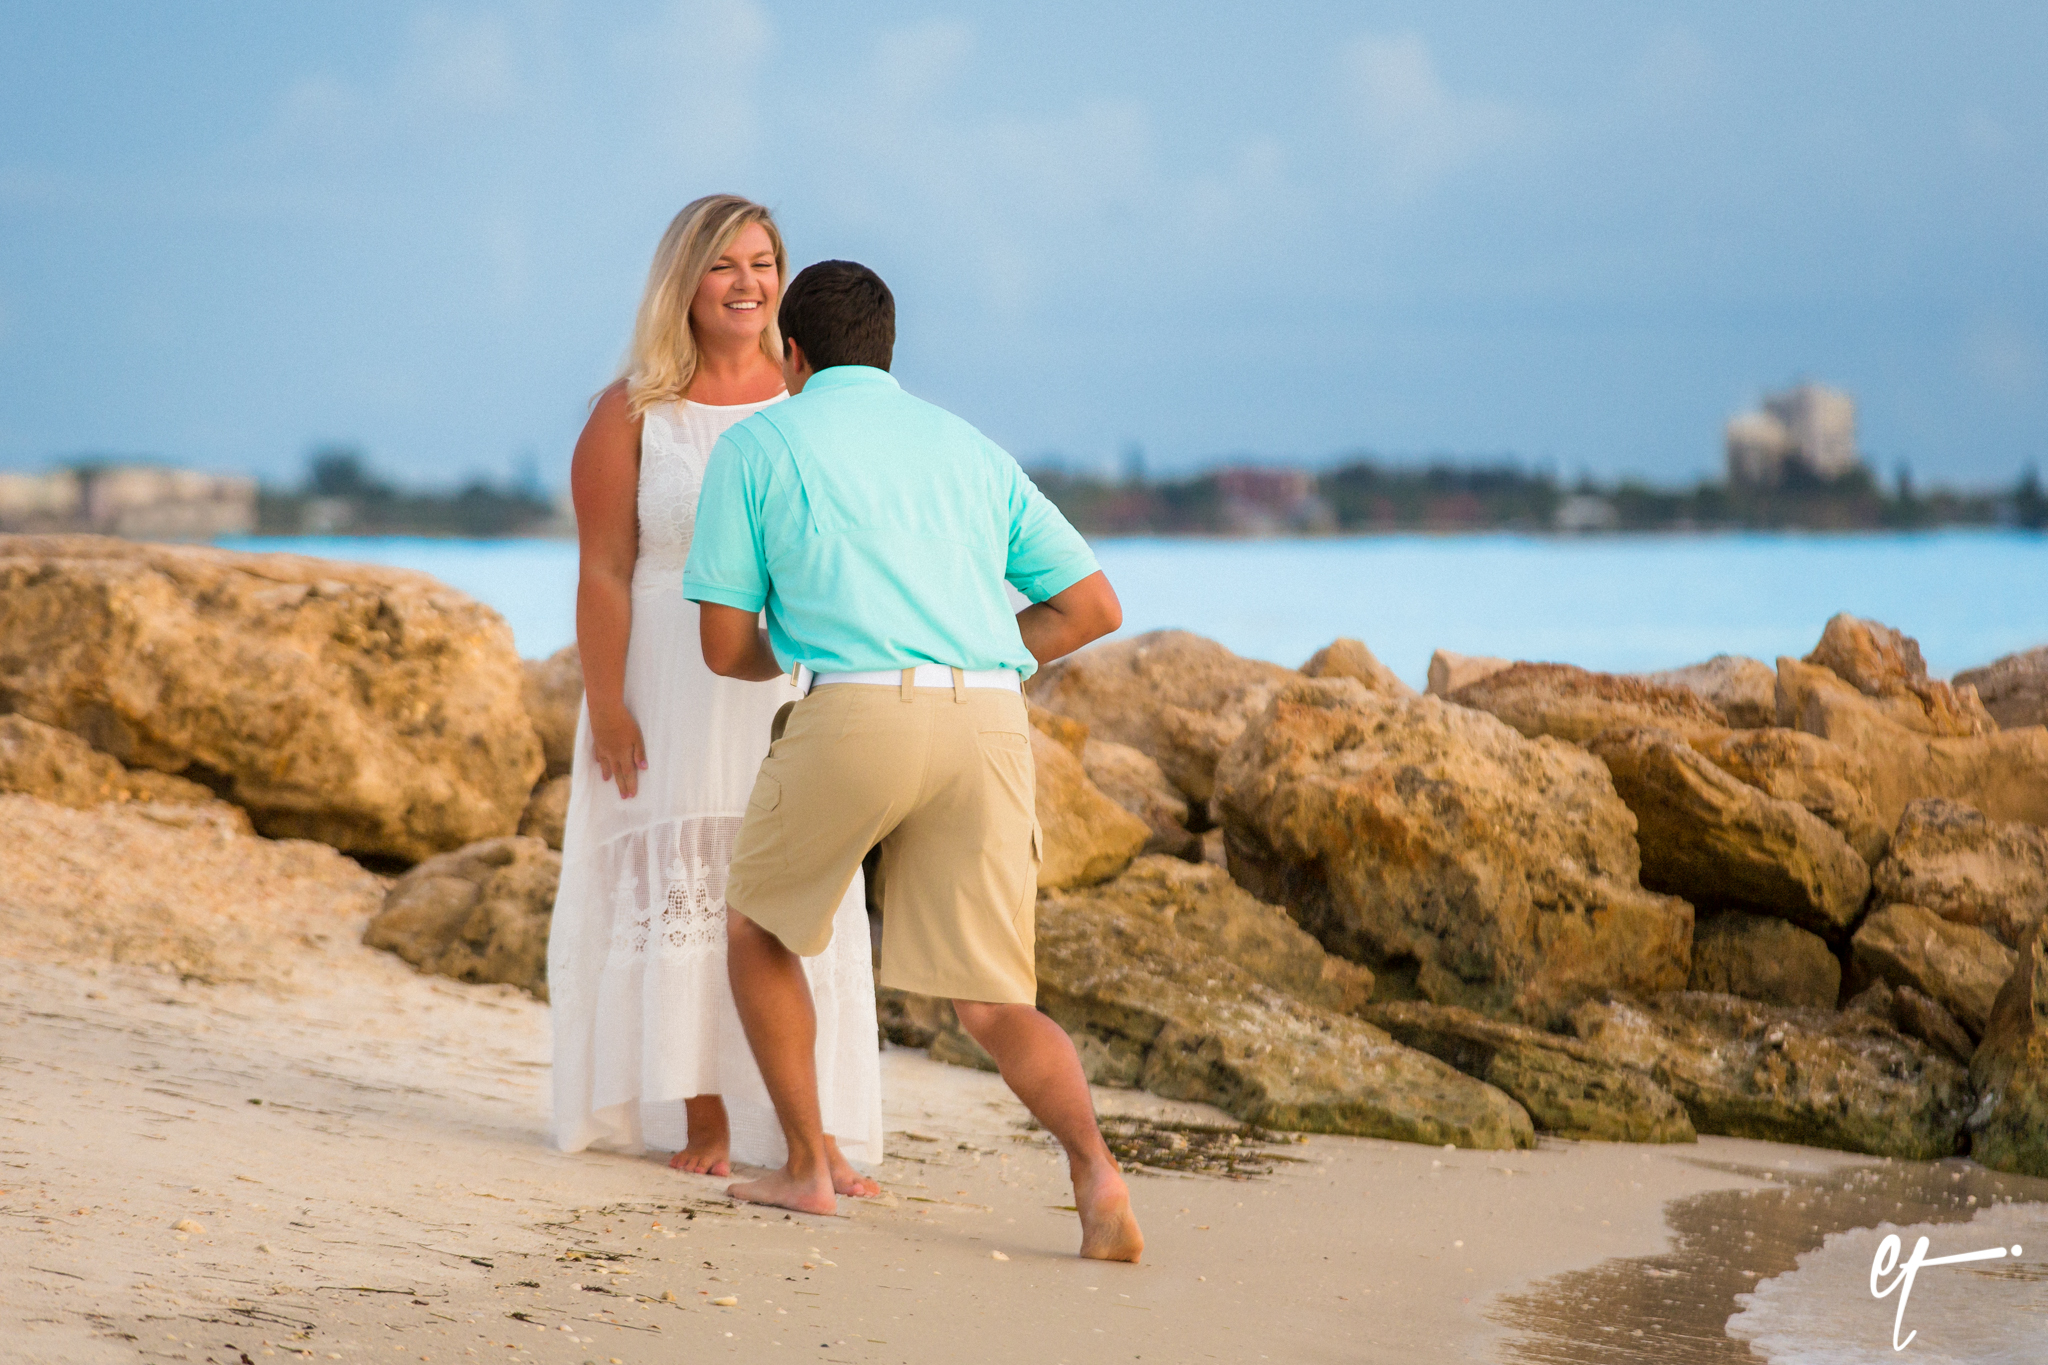 Surprise_Proposal_Sarasota_Lido_Key_Photography_Florida-5.jpg